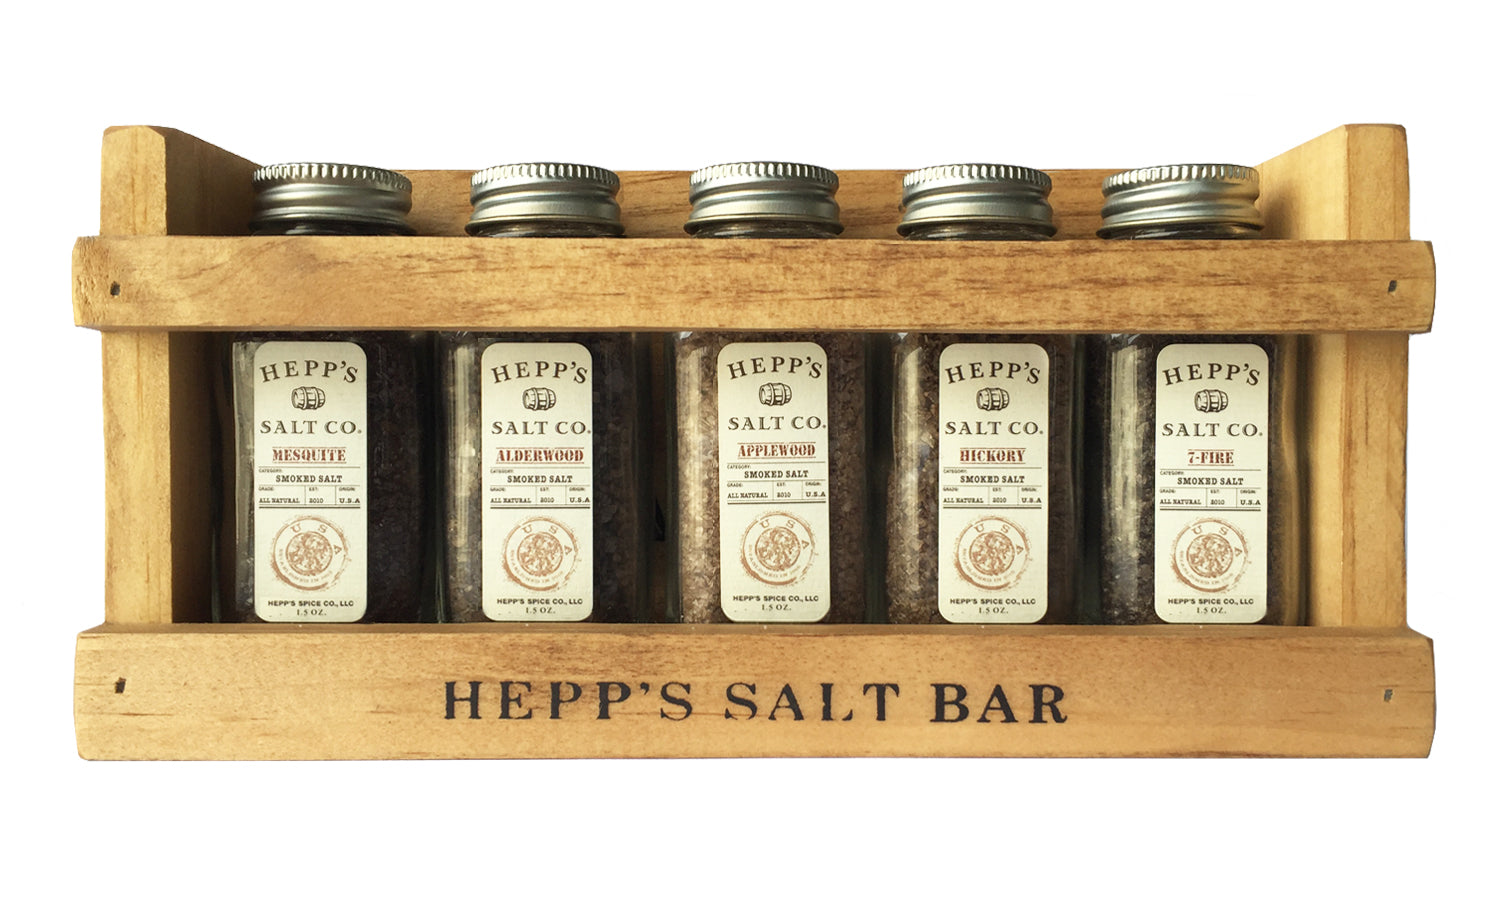 Smokehouse Collection Gift Set - HEPPS SALT CO.